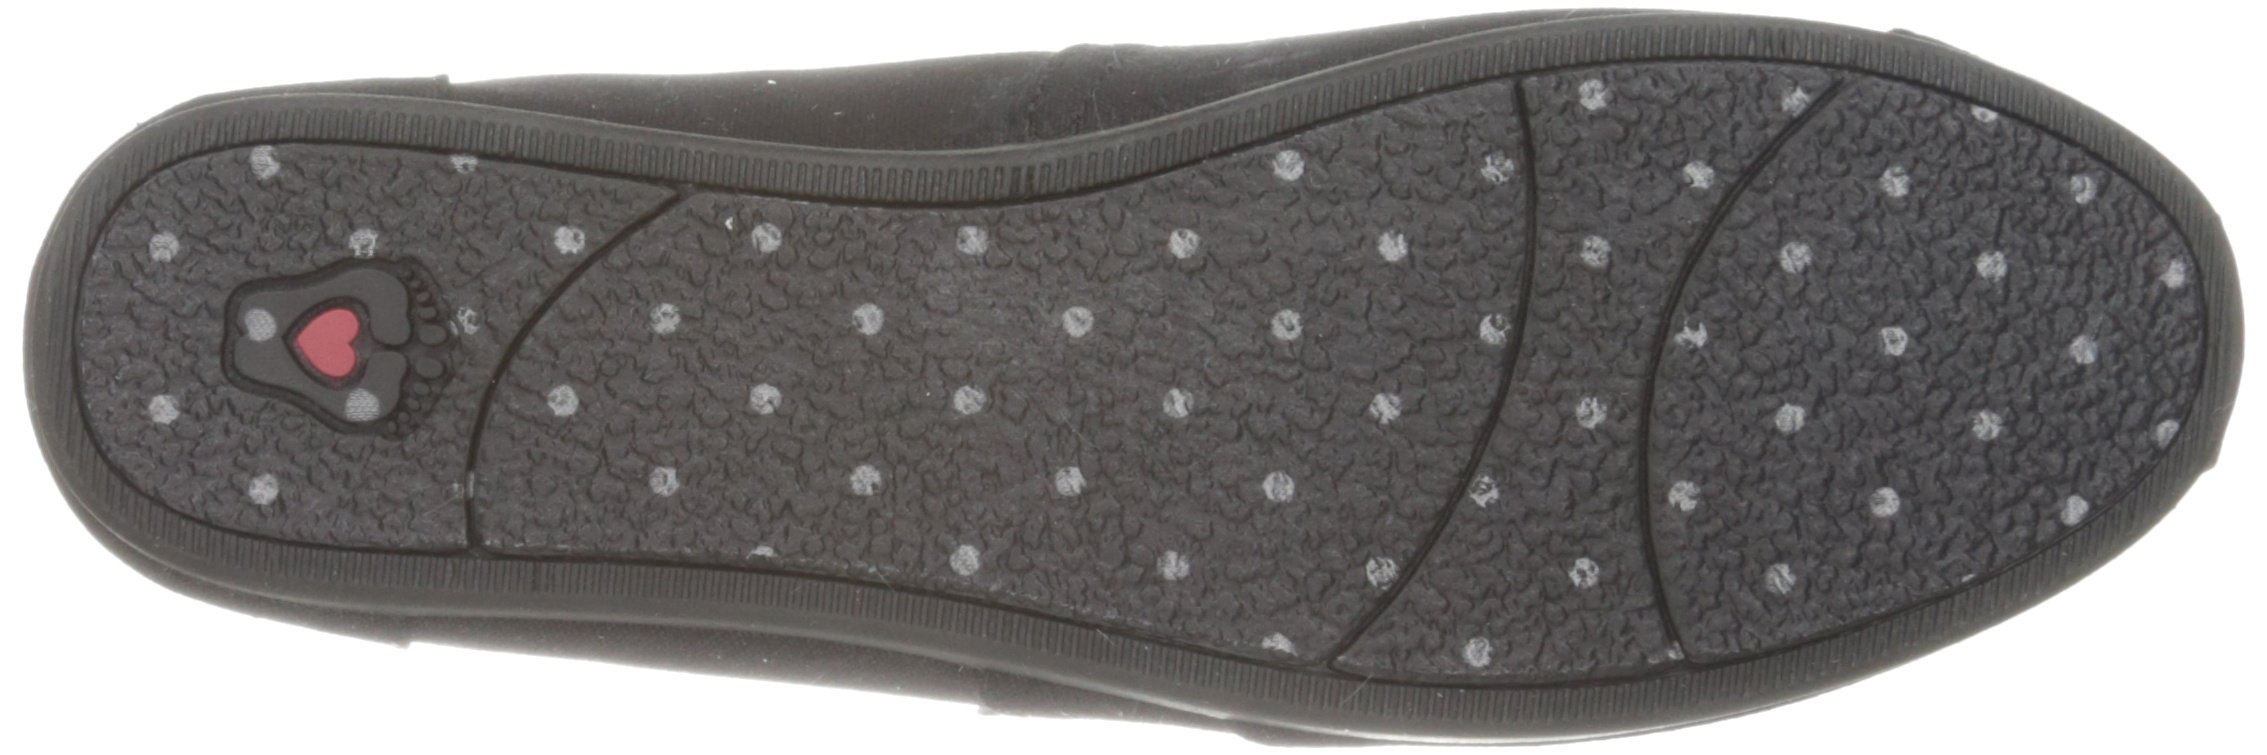 Skechers BOBS from Women's Plush - Peace and Love Flat, Black, 9.5 W US by Skechers (Image #3)